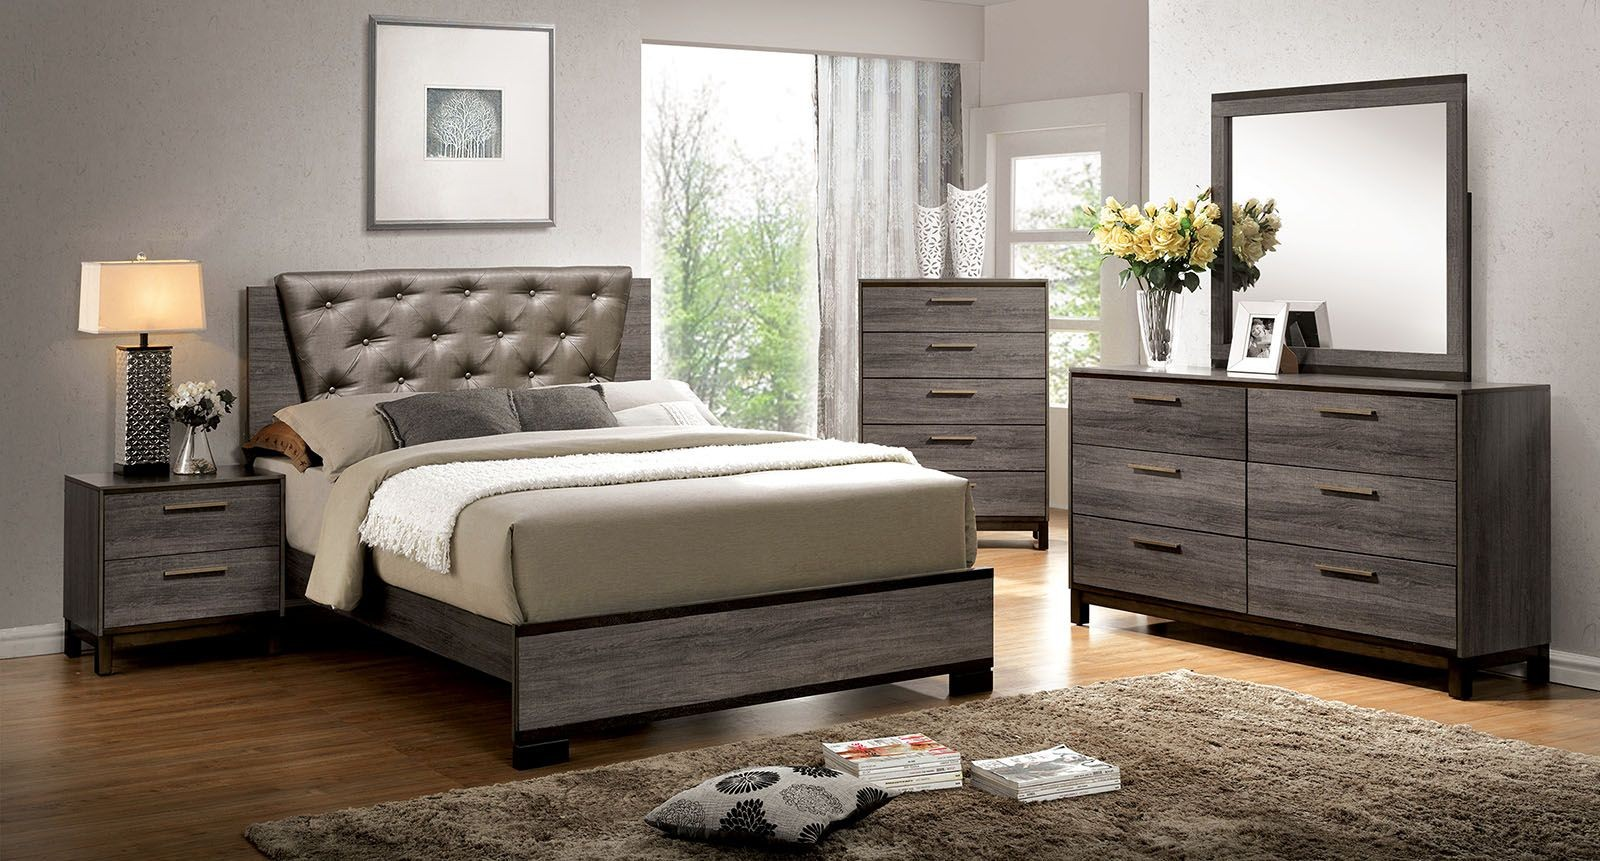 Manvel Dark Gray Upholstered Bedroom Set From Furniture Of